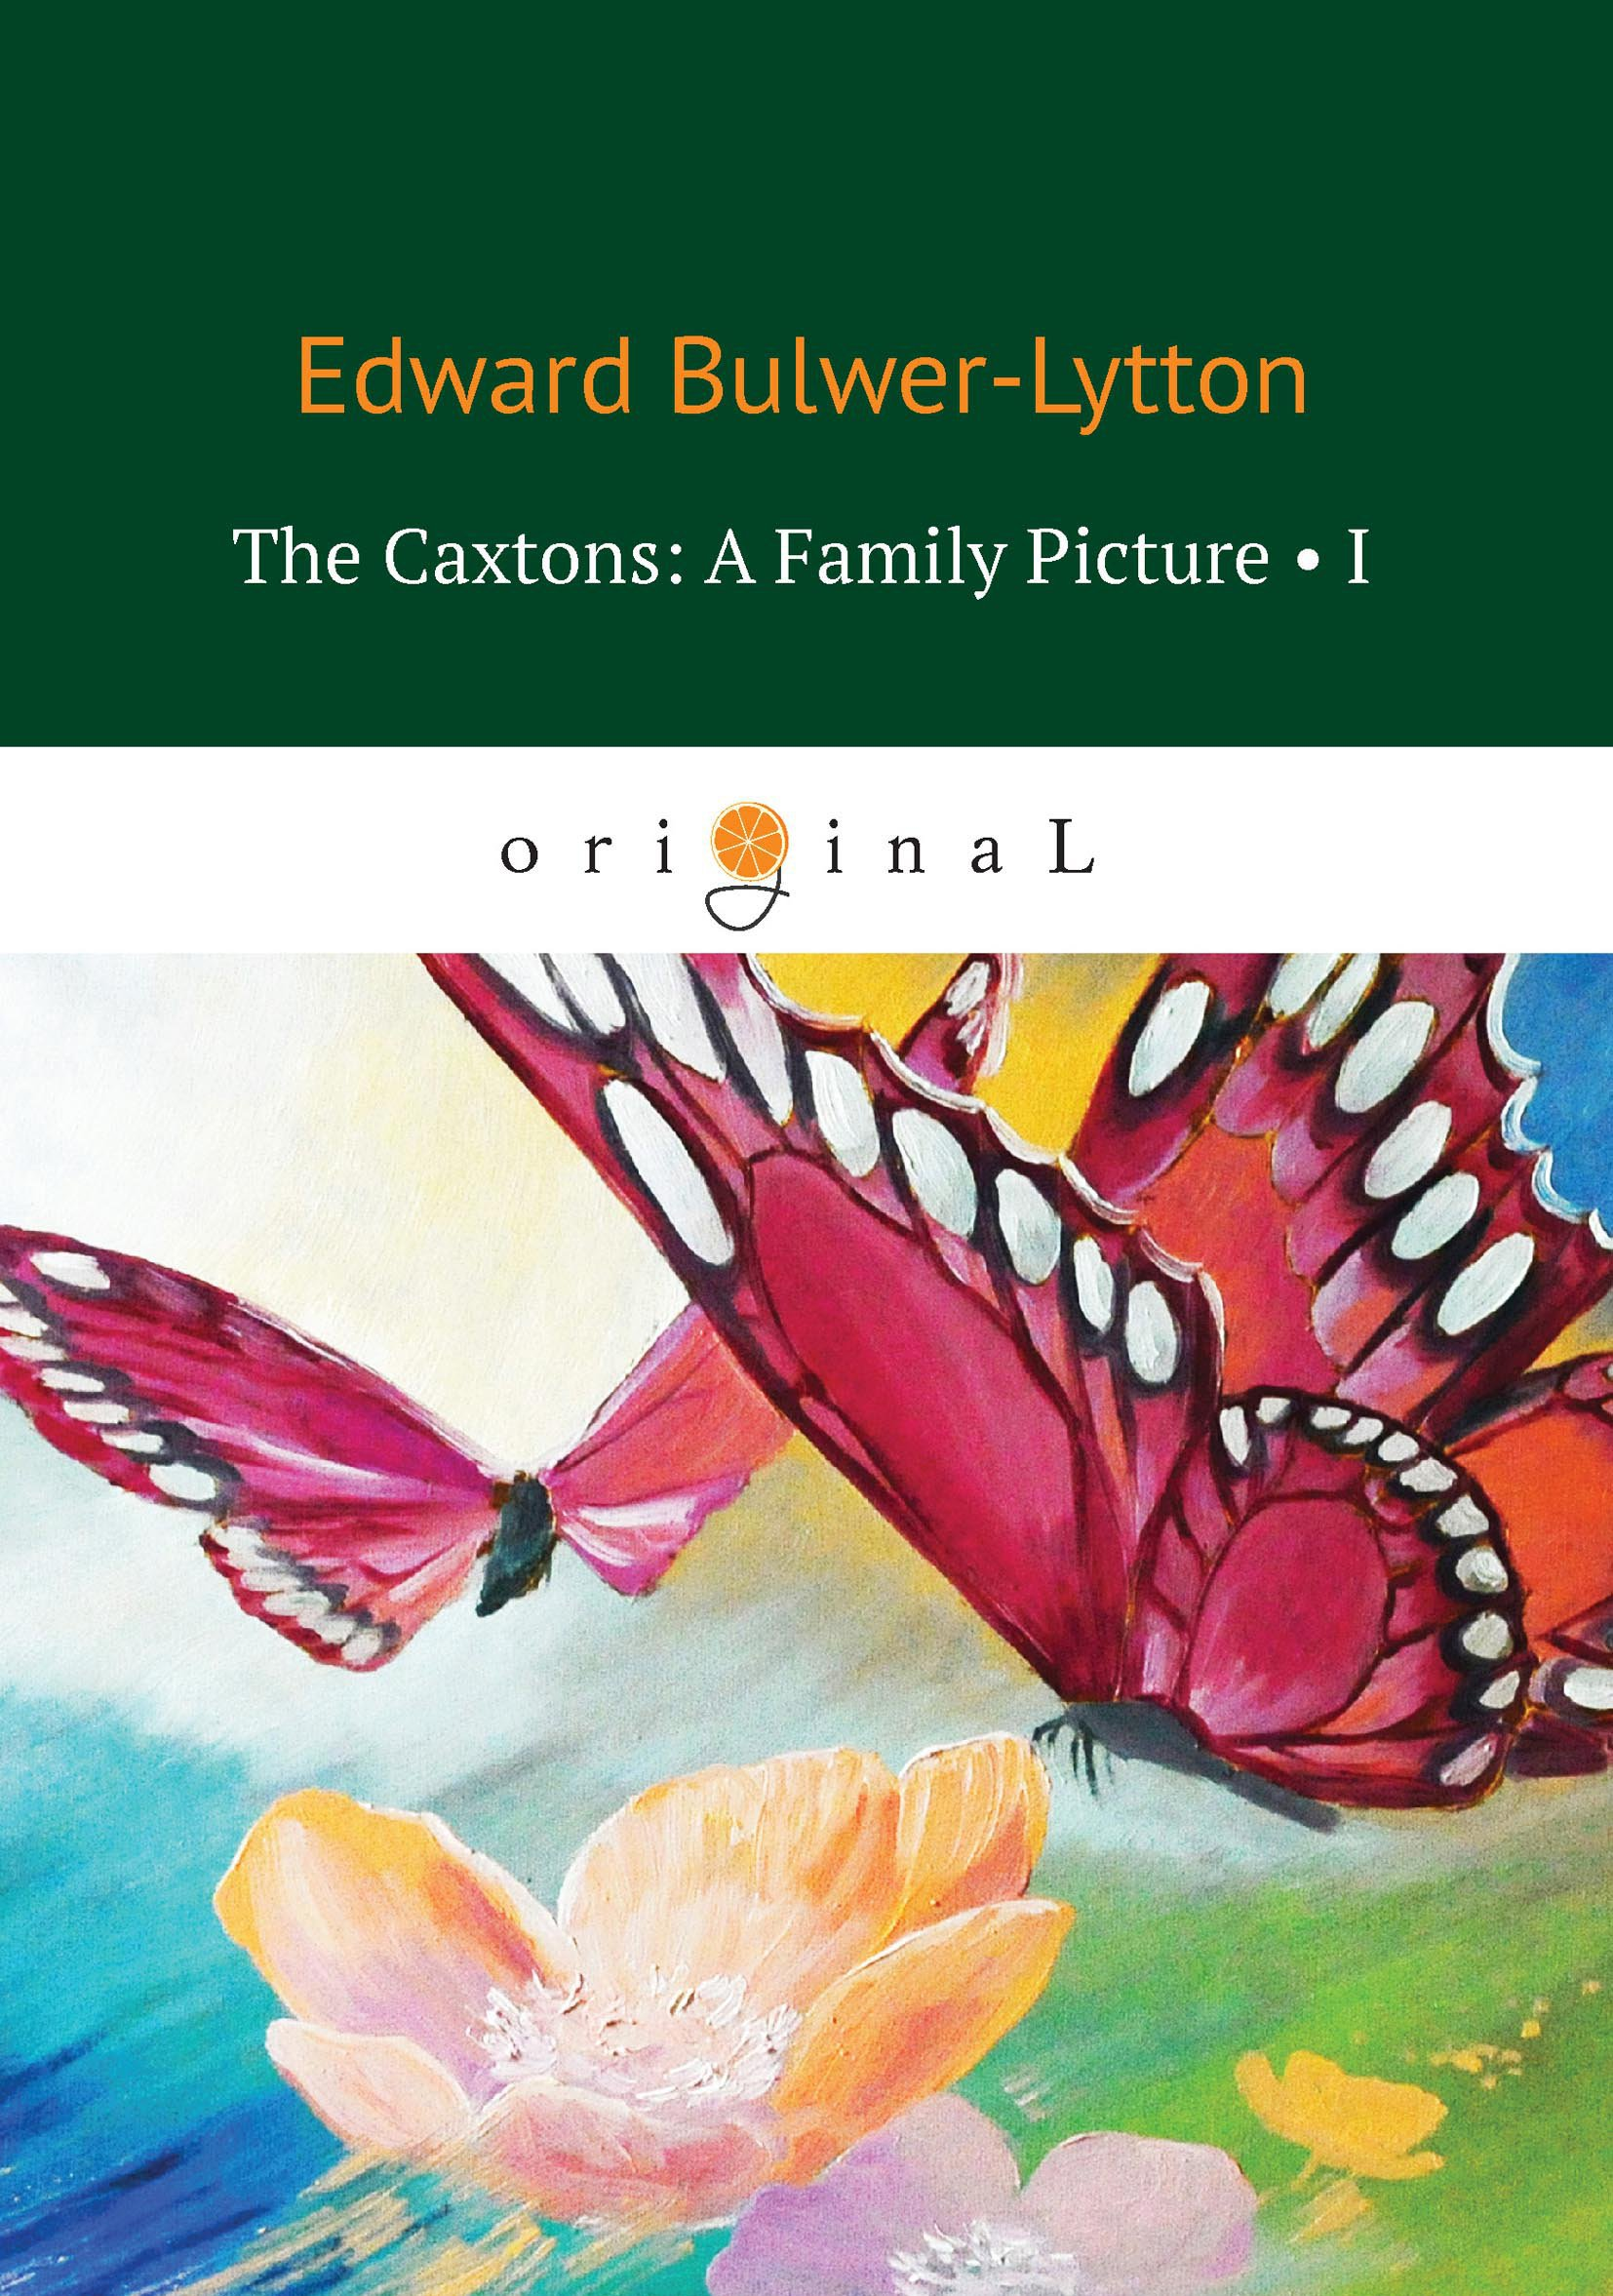 Бульвер-Литтон Эдвард The Caxtons: A Family Picture 1 = Семейство Какстон 1 bulwer lytton edward the caxtons a family picture 1